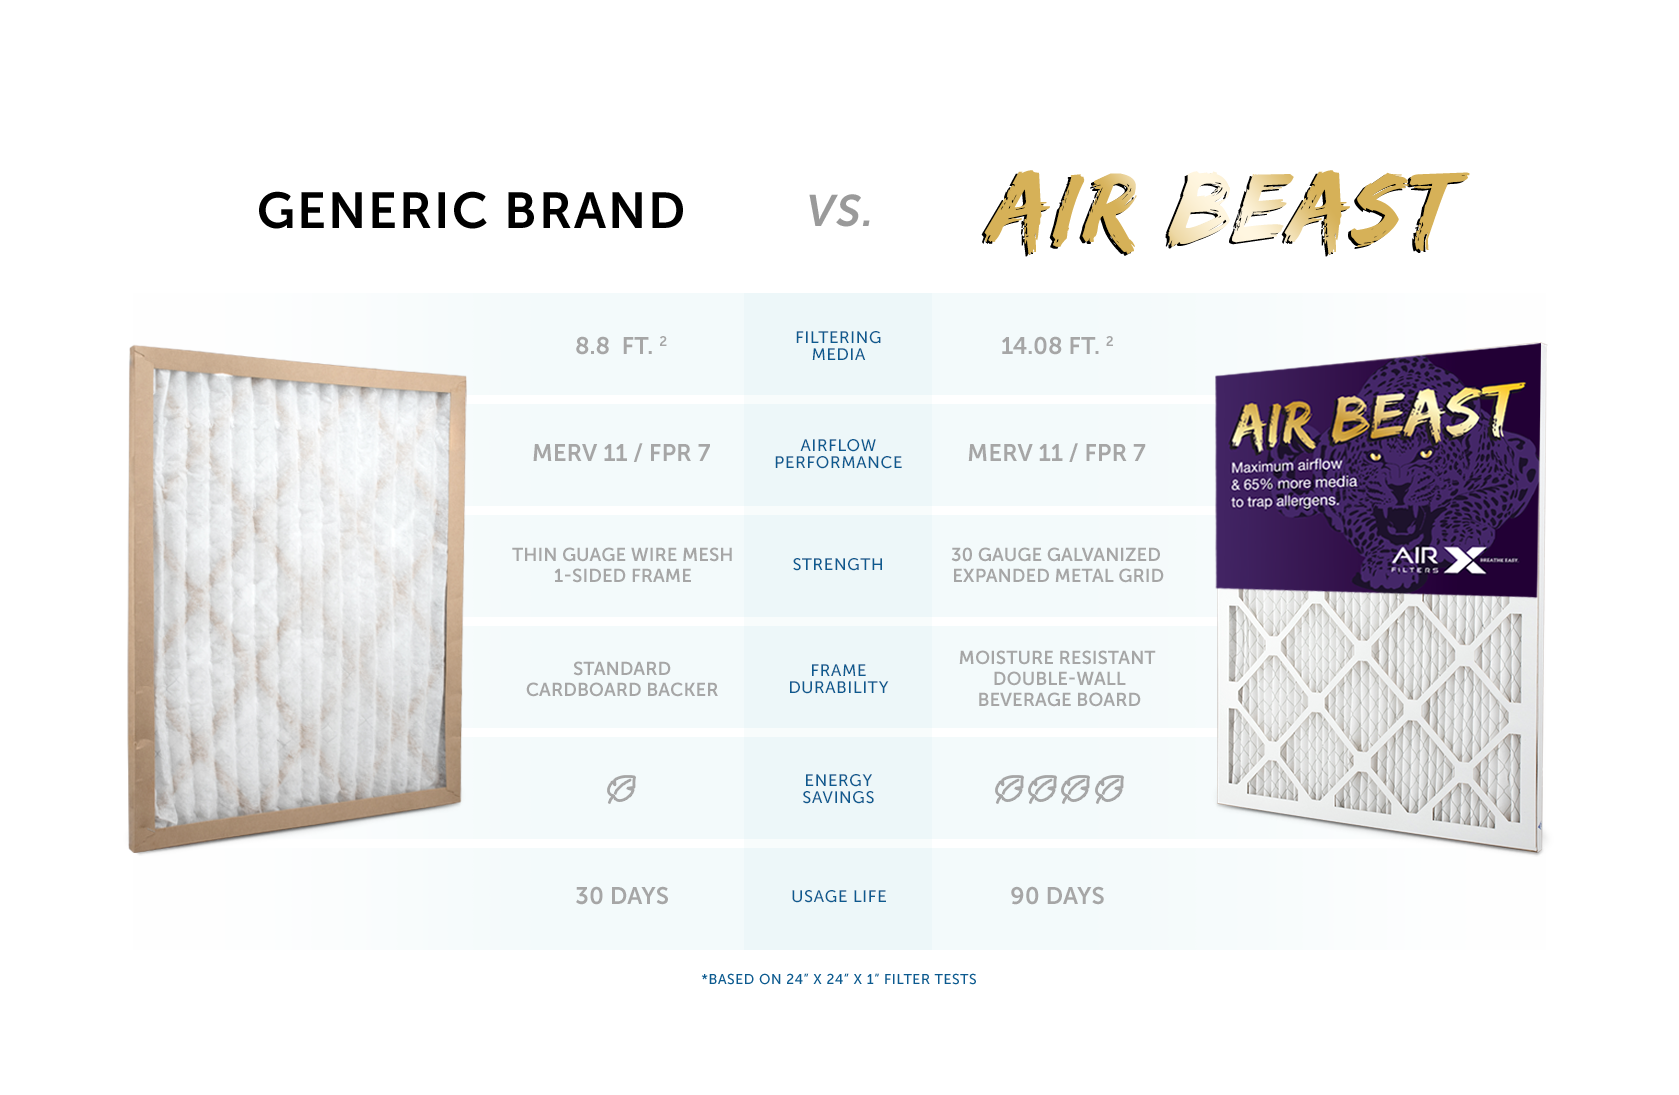 Air Beast Comparison Table